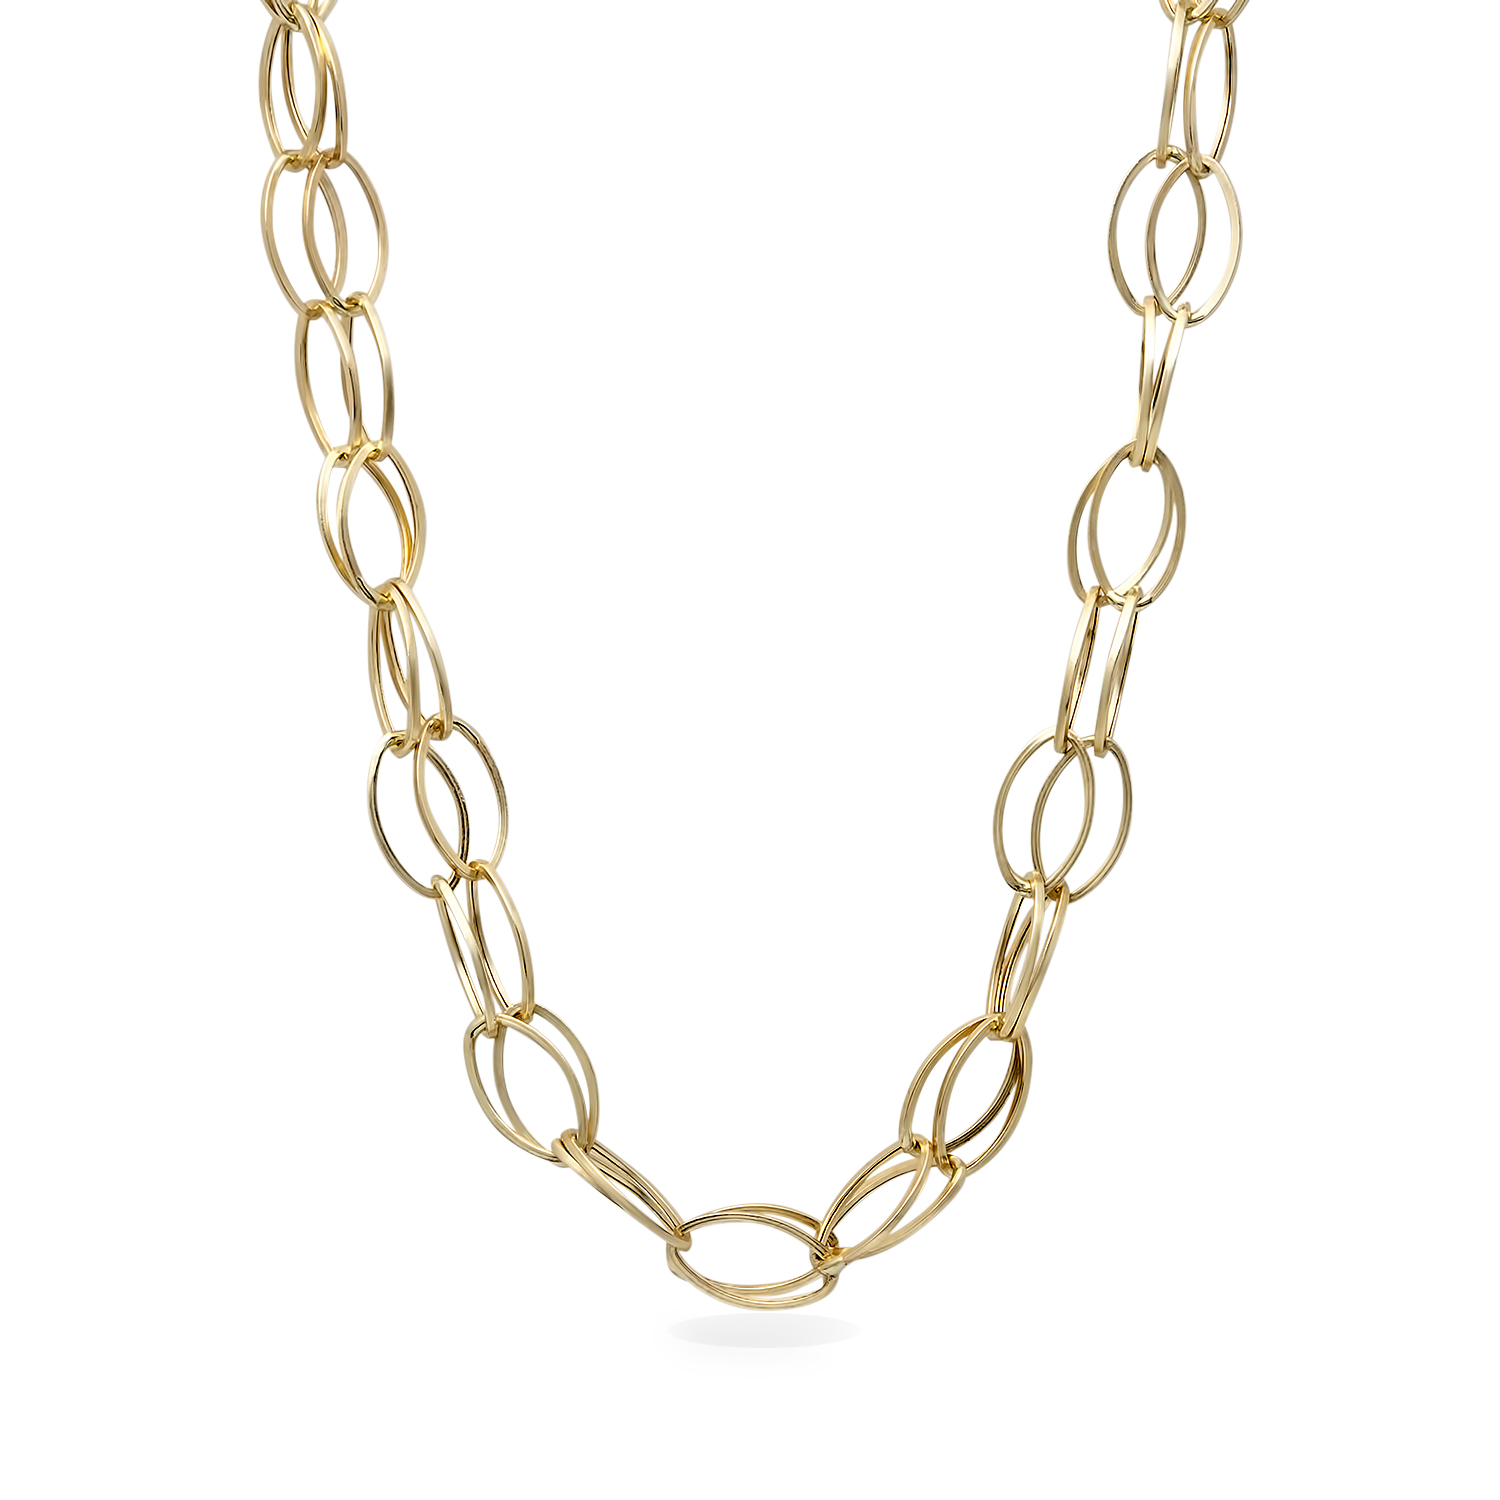 14k Gold Double Strand Oval Link Necklace